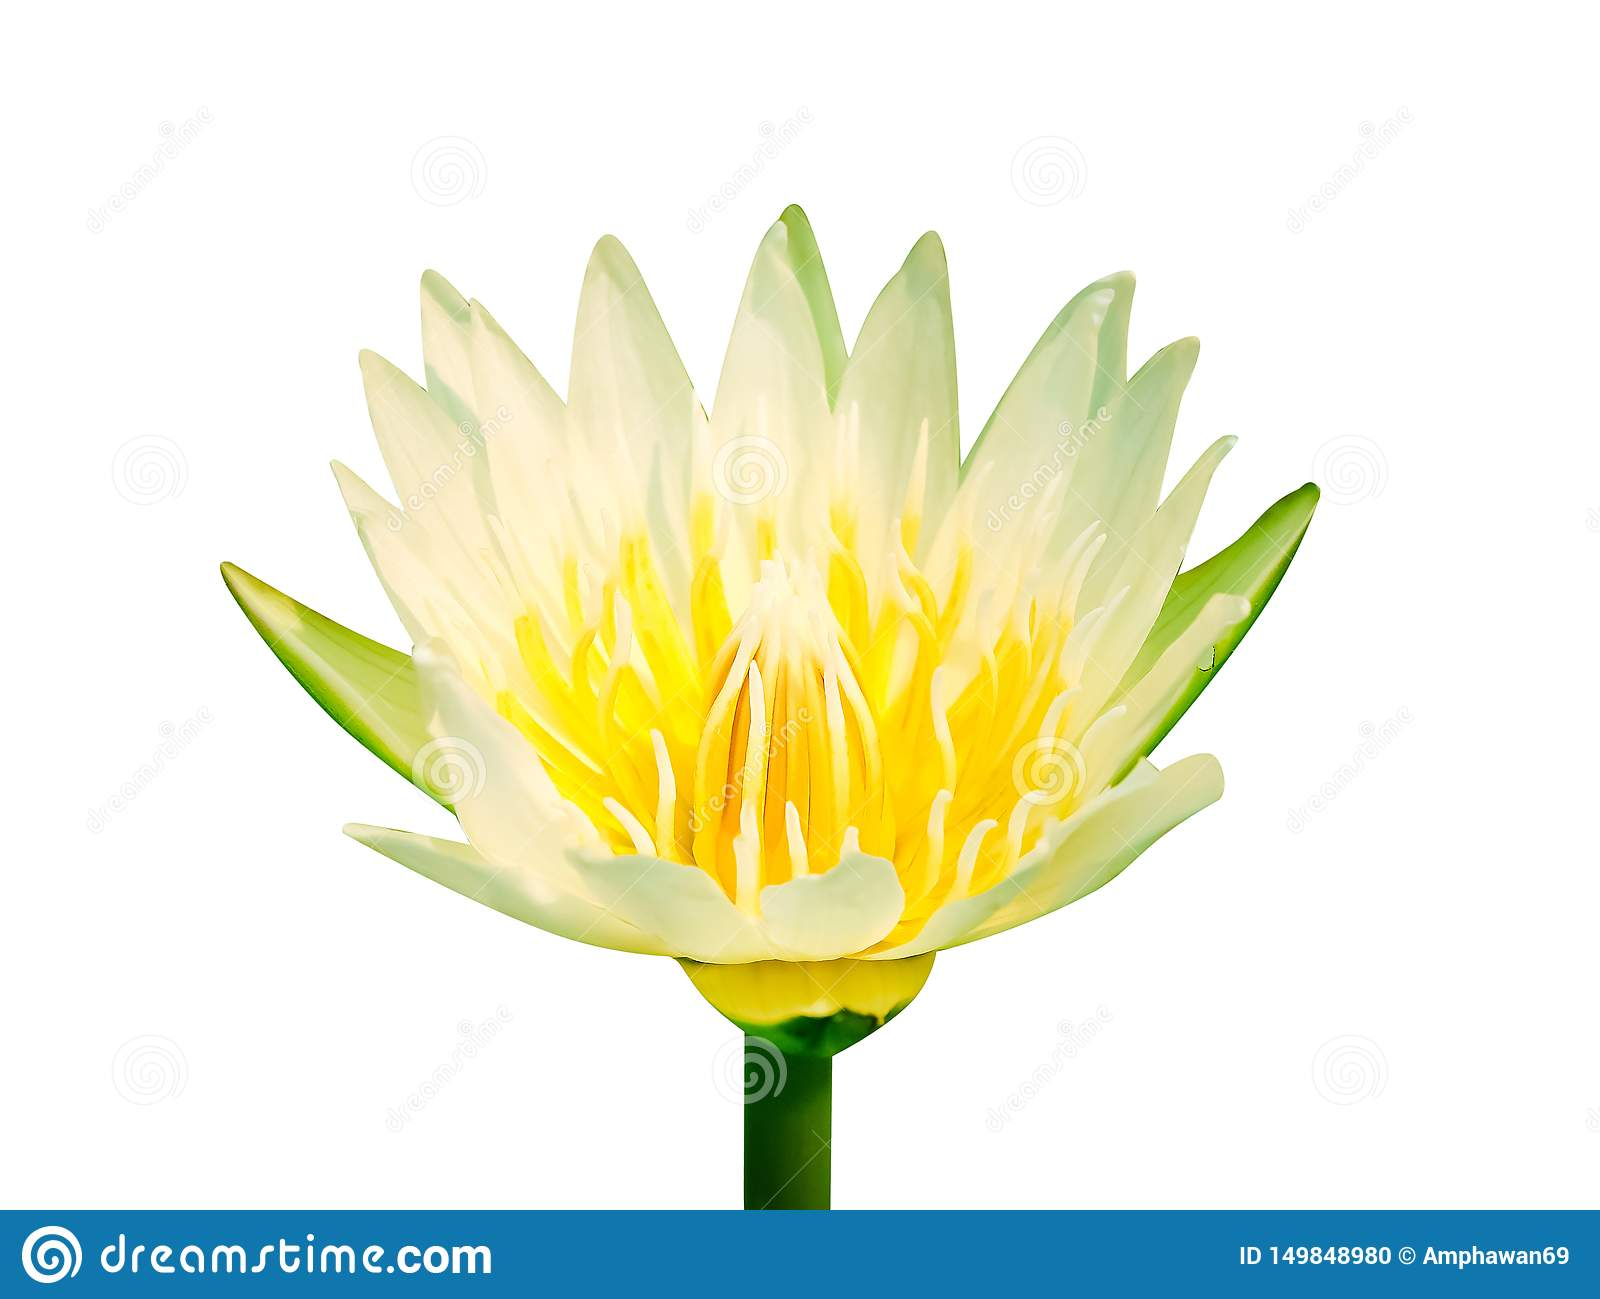 Single lily lotus bud flowers white petal with colorful yellow pollen begins blooming isolated on background with clipping path